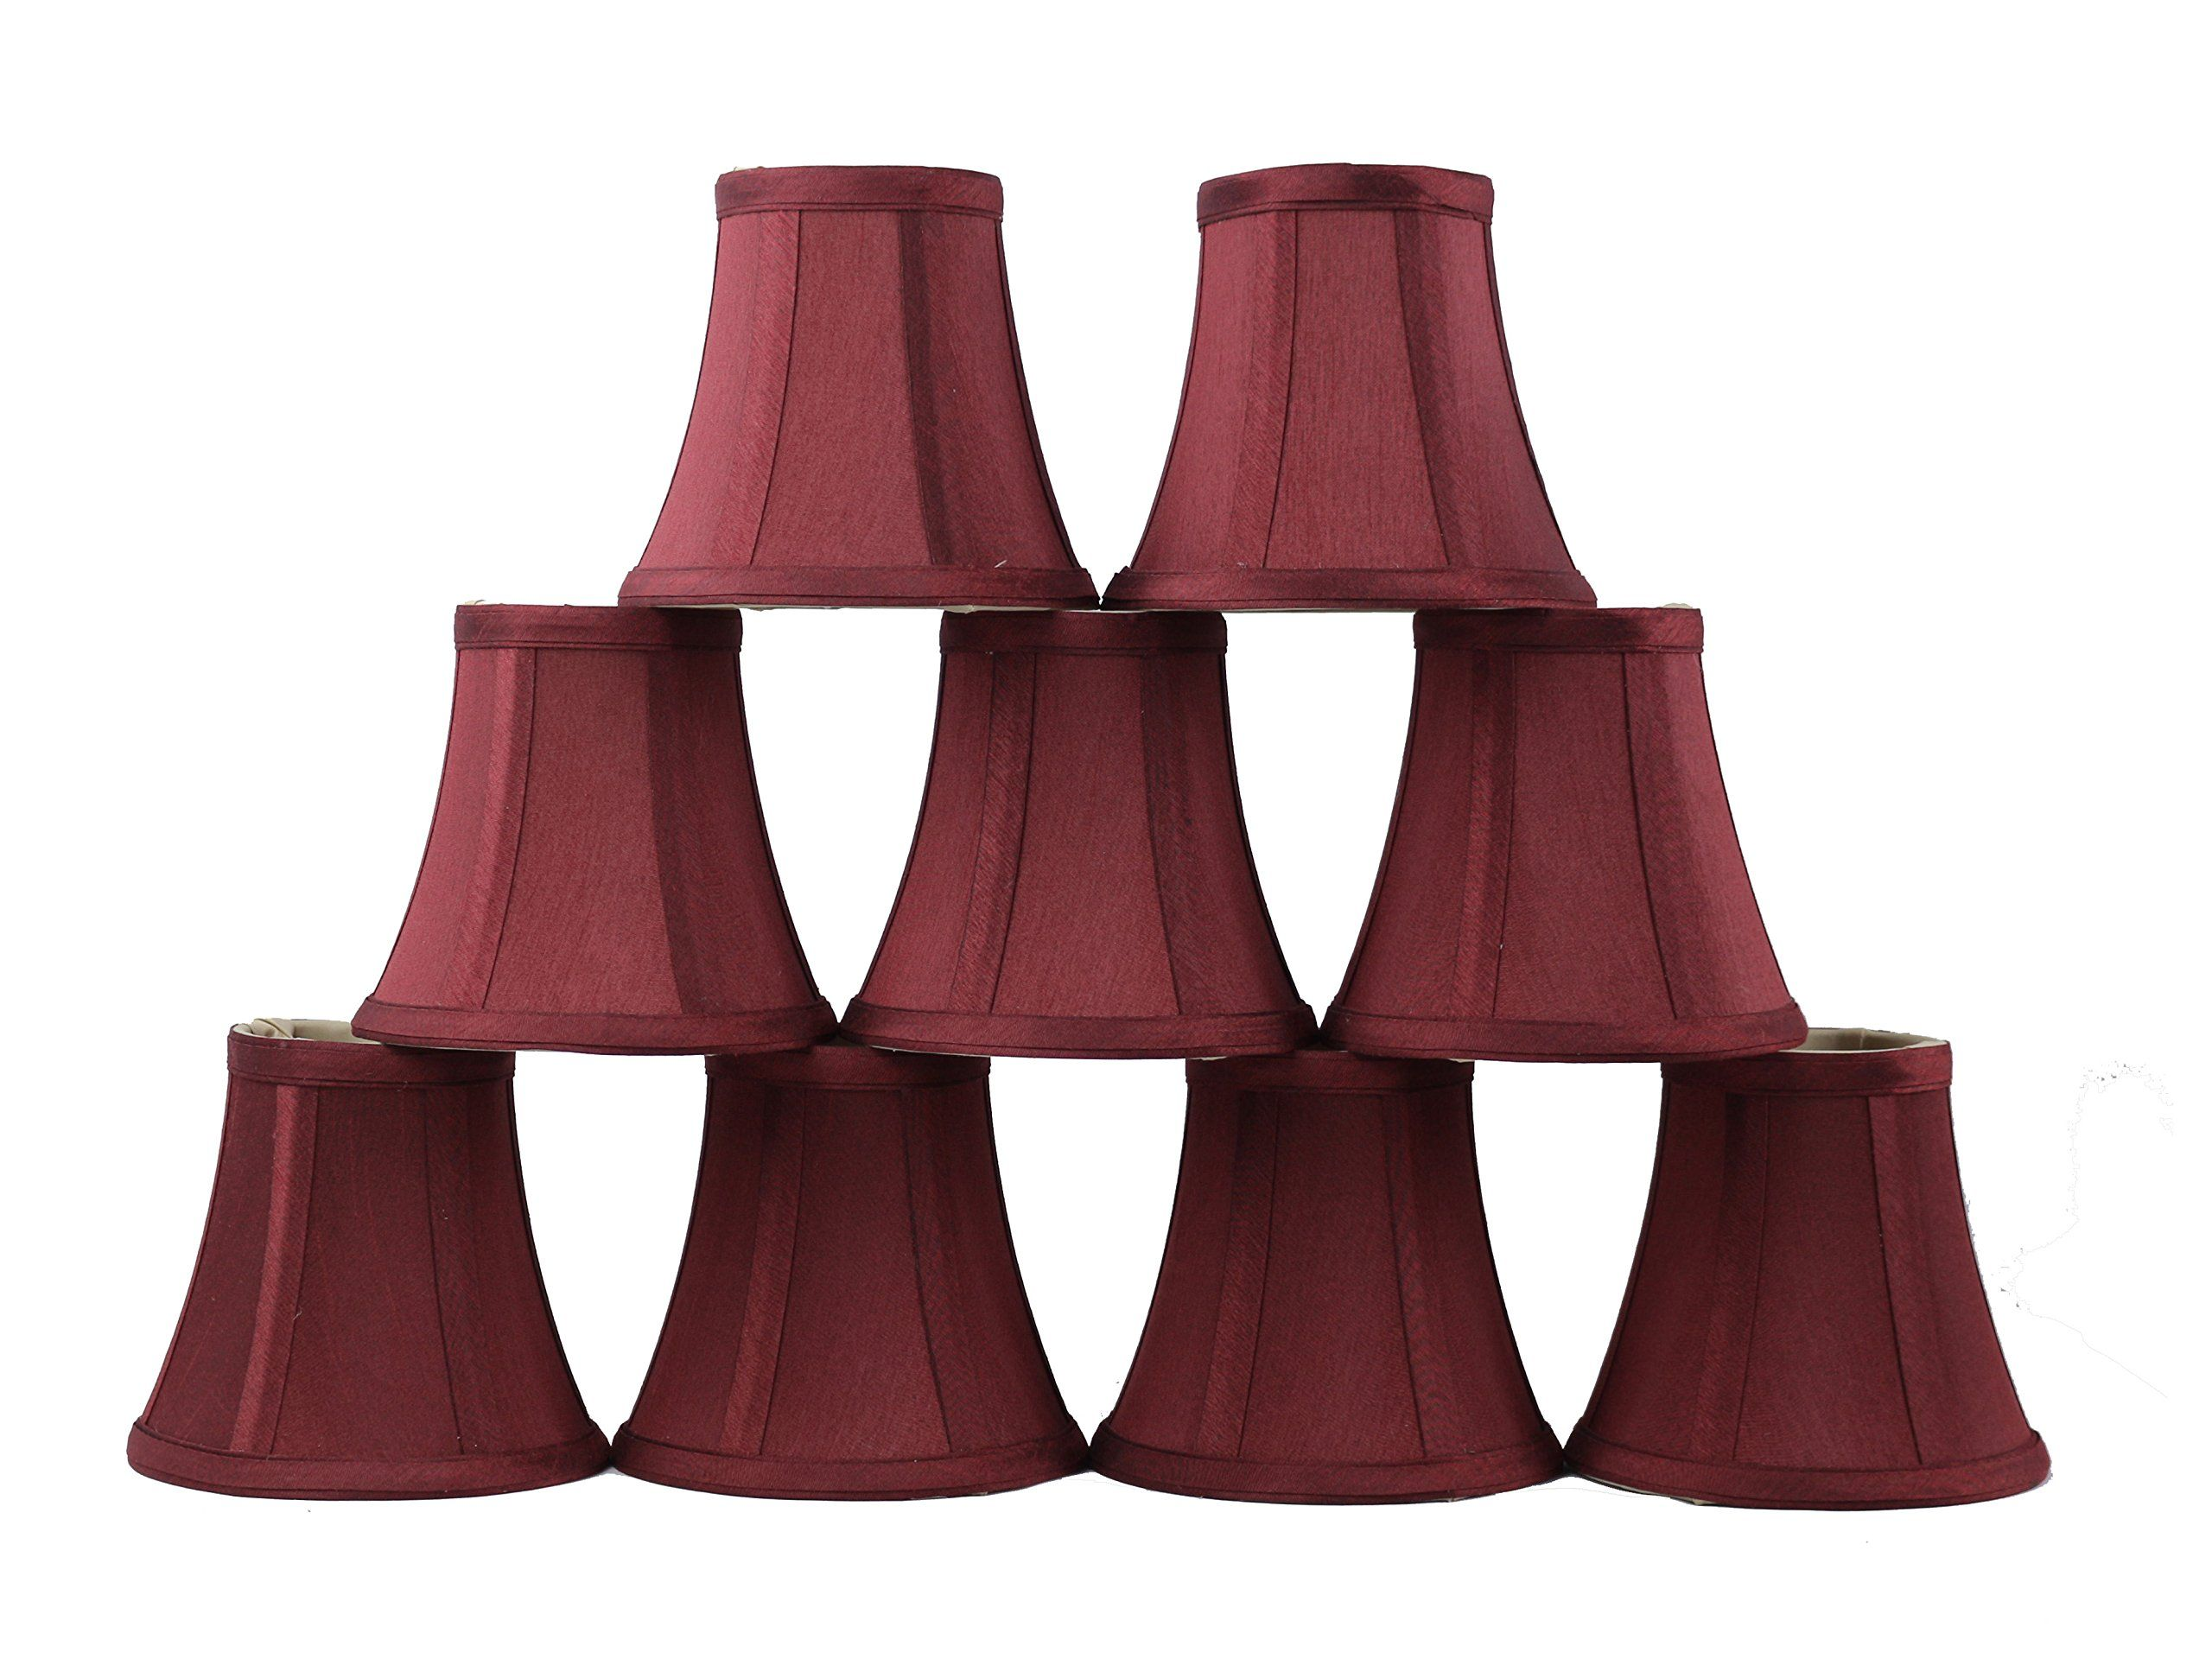 Urbanest d set of chandelier mini lamp shades inch bell